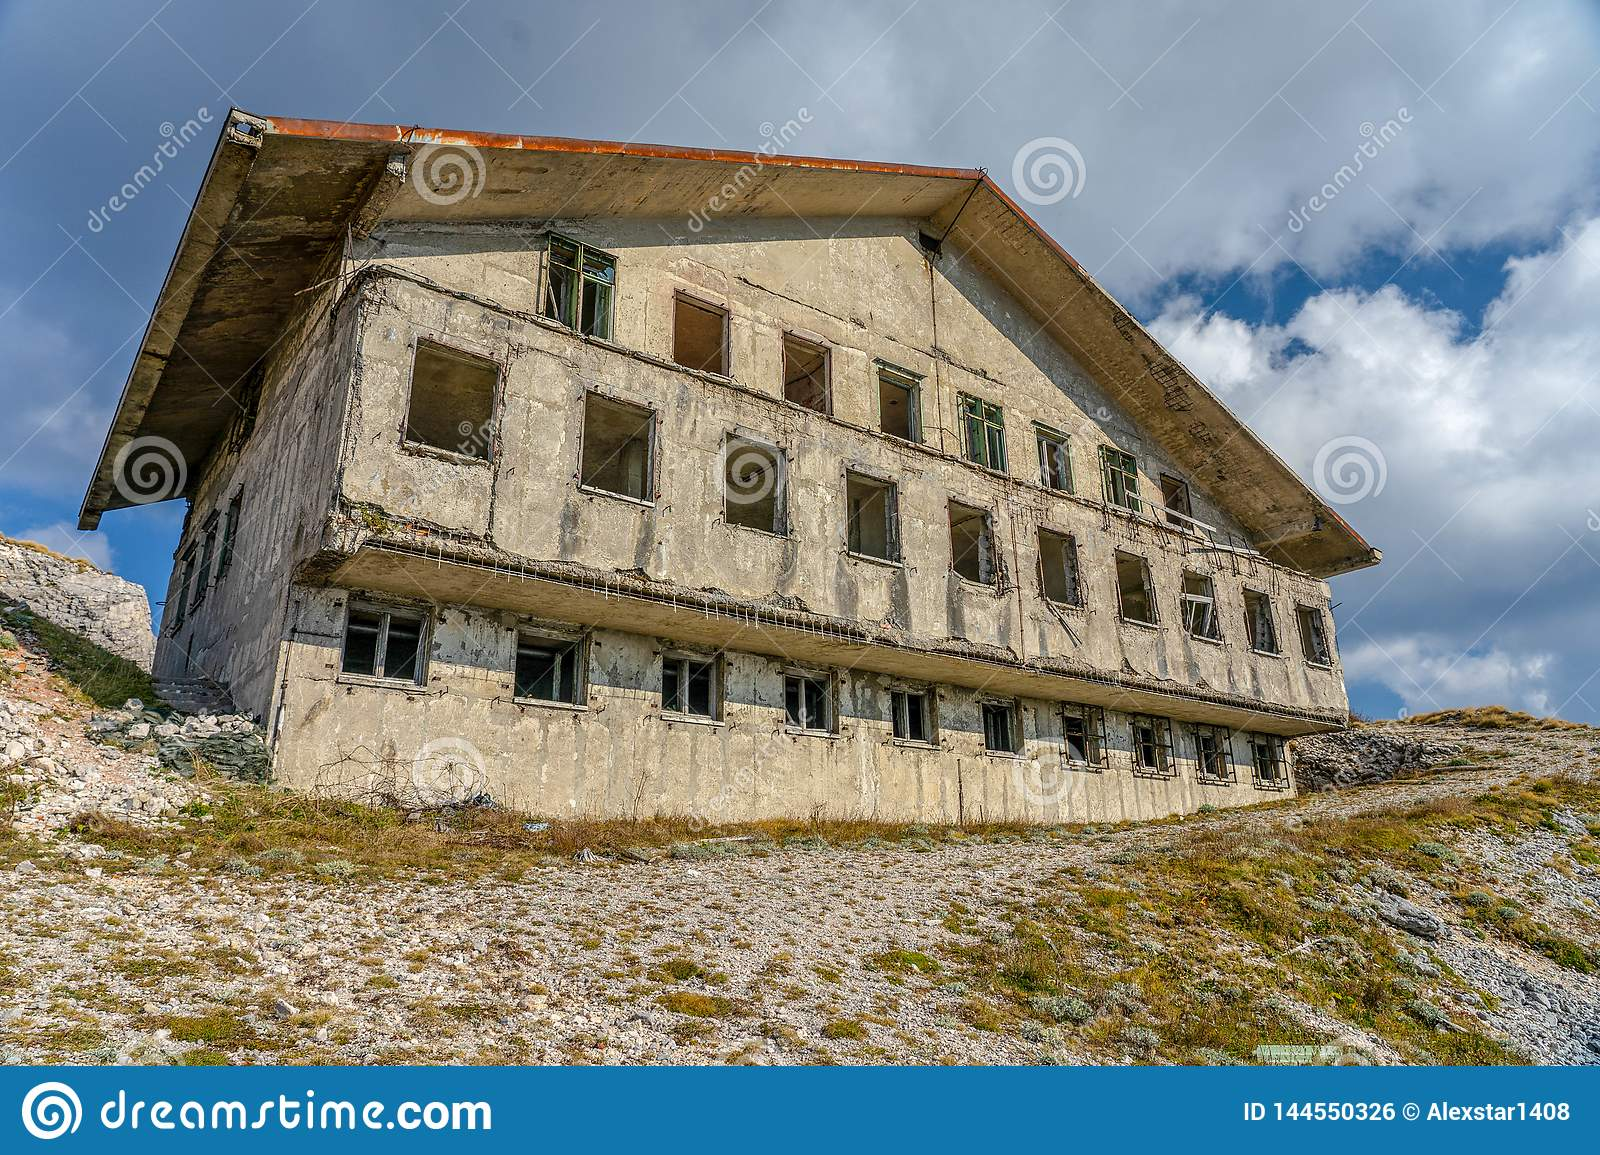 Abandoned Military Barracks on the mountain side in the clouds